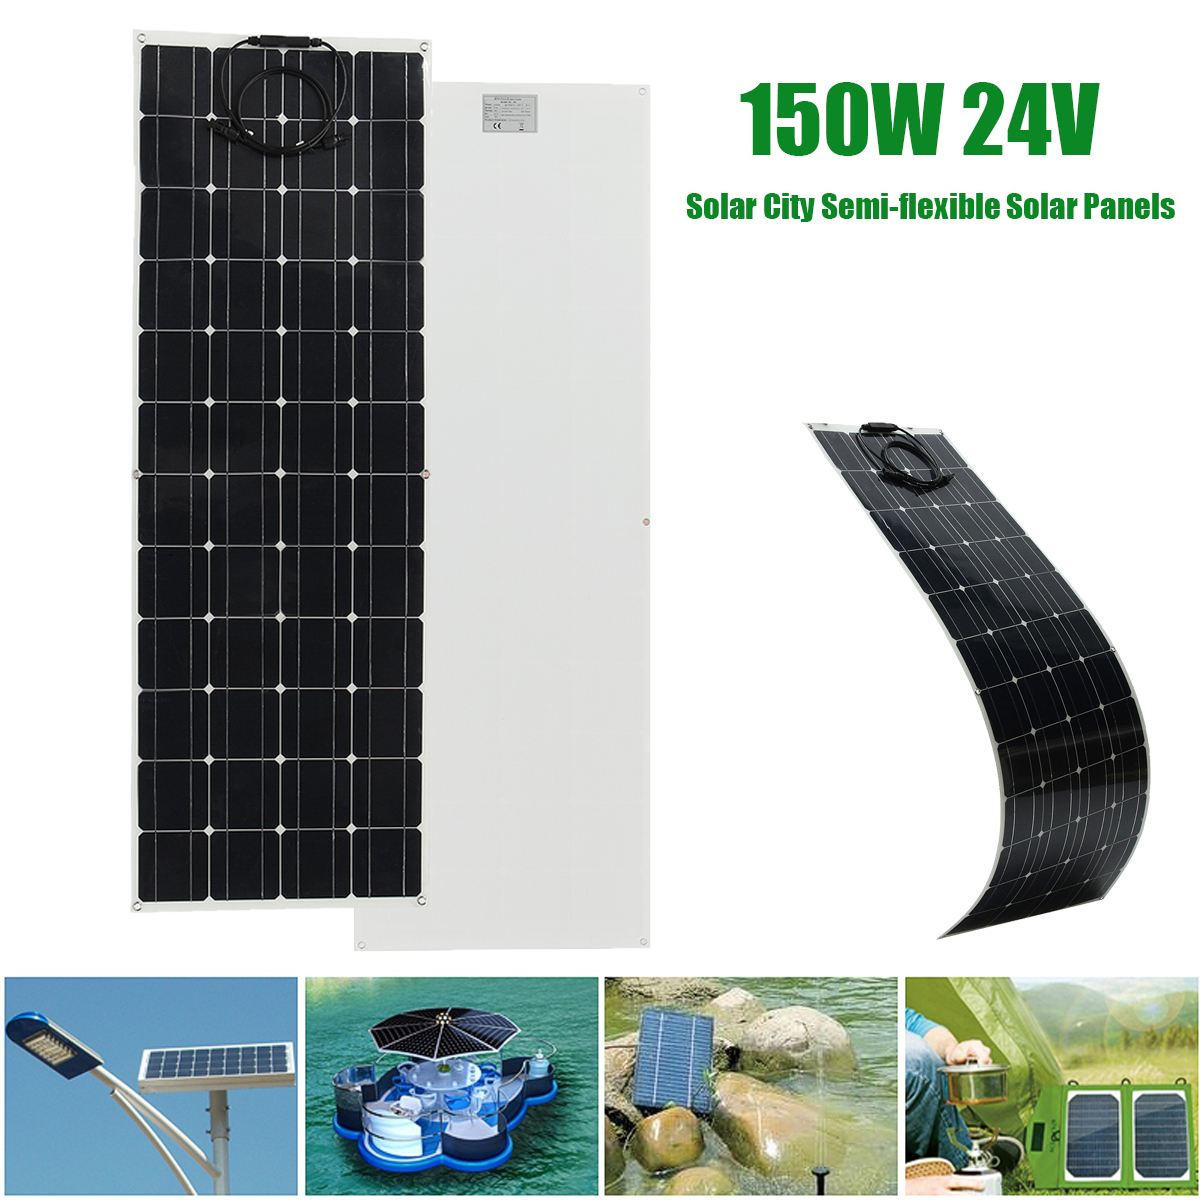 EL-05 150W 24V Semi Flexible Monocrystalline Solar Panel Waterproof High Conversion Efficiency Solar Panel + 1.5m Cable 50w 12v semi flexible monocrystalline silicon solar panel solar battery power generater for battery rv car boat aircraft tourism